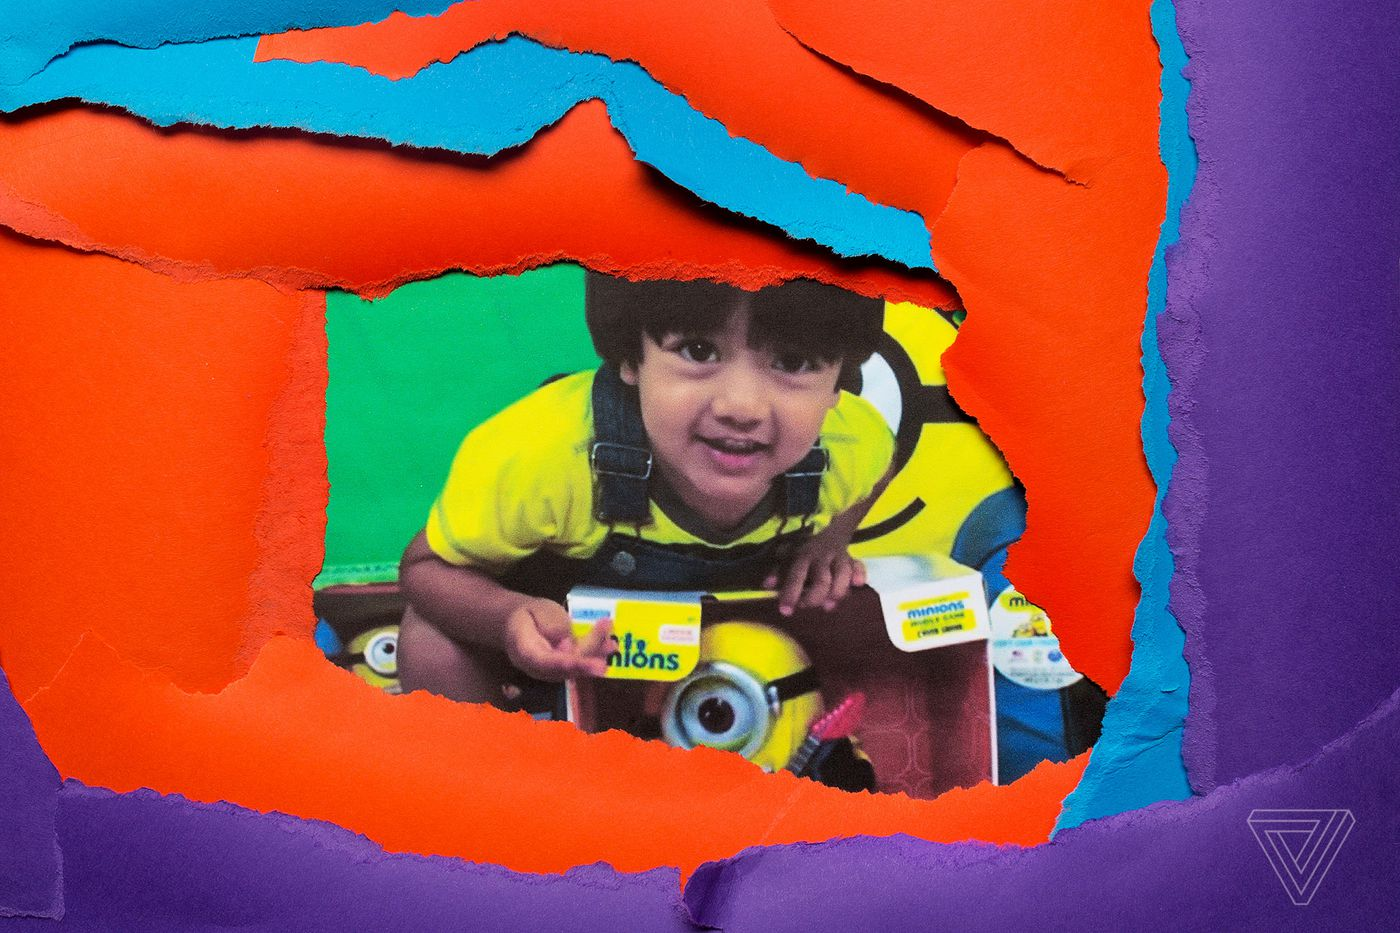 YouTube's biggest star is a 5-year-old that makes millions